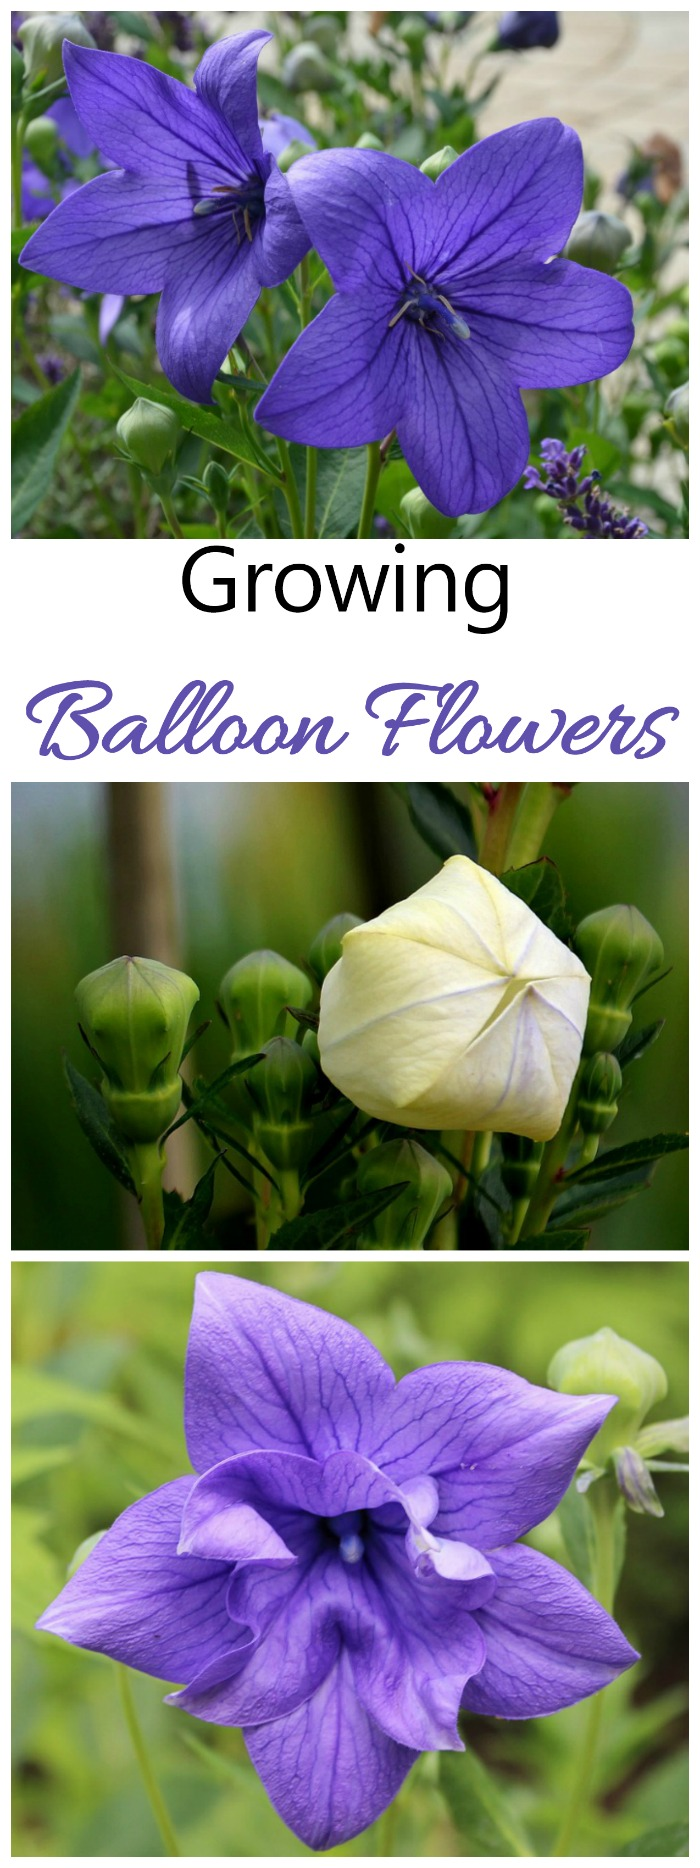 Platycodon grandiflorus is also known as Balloon flower or Chinese Bell Flower. It is easy to grow and deer resistant.